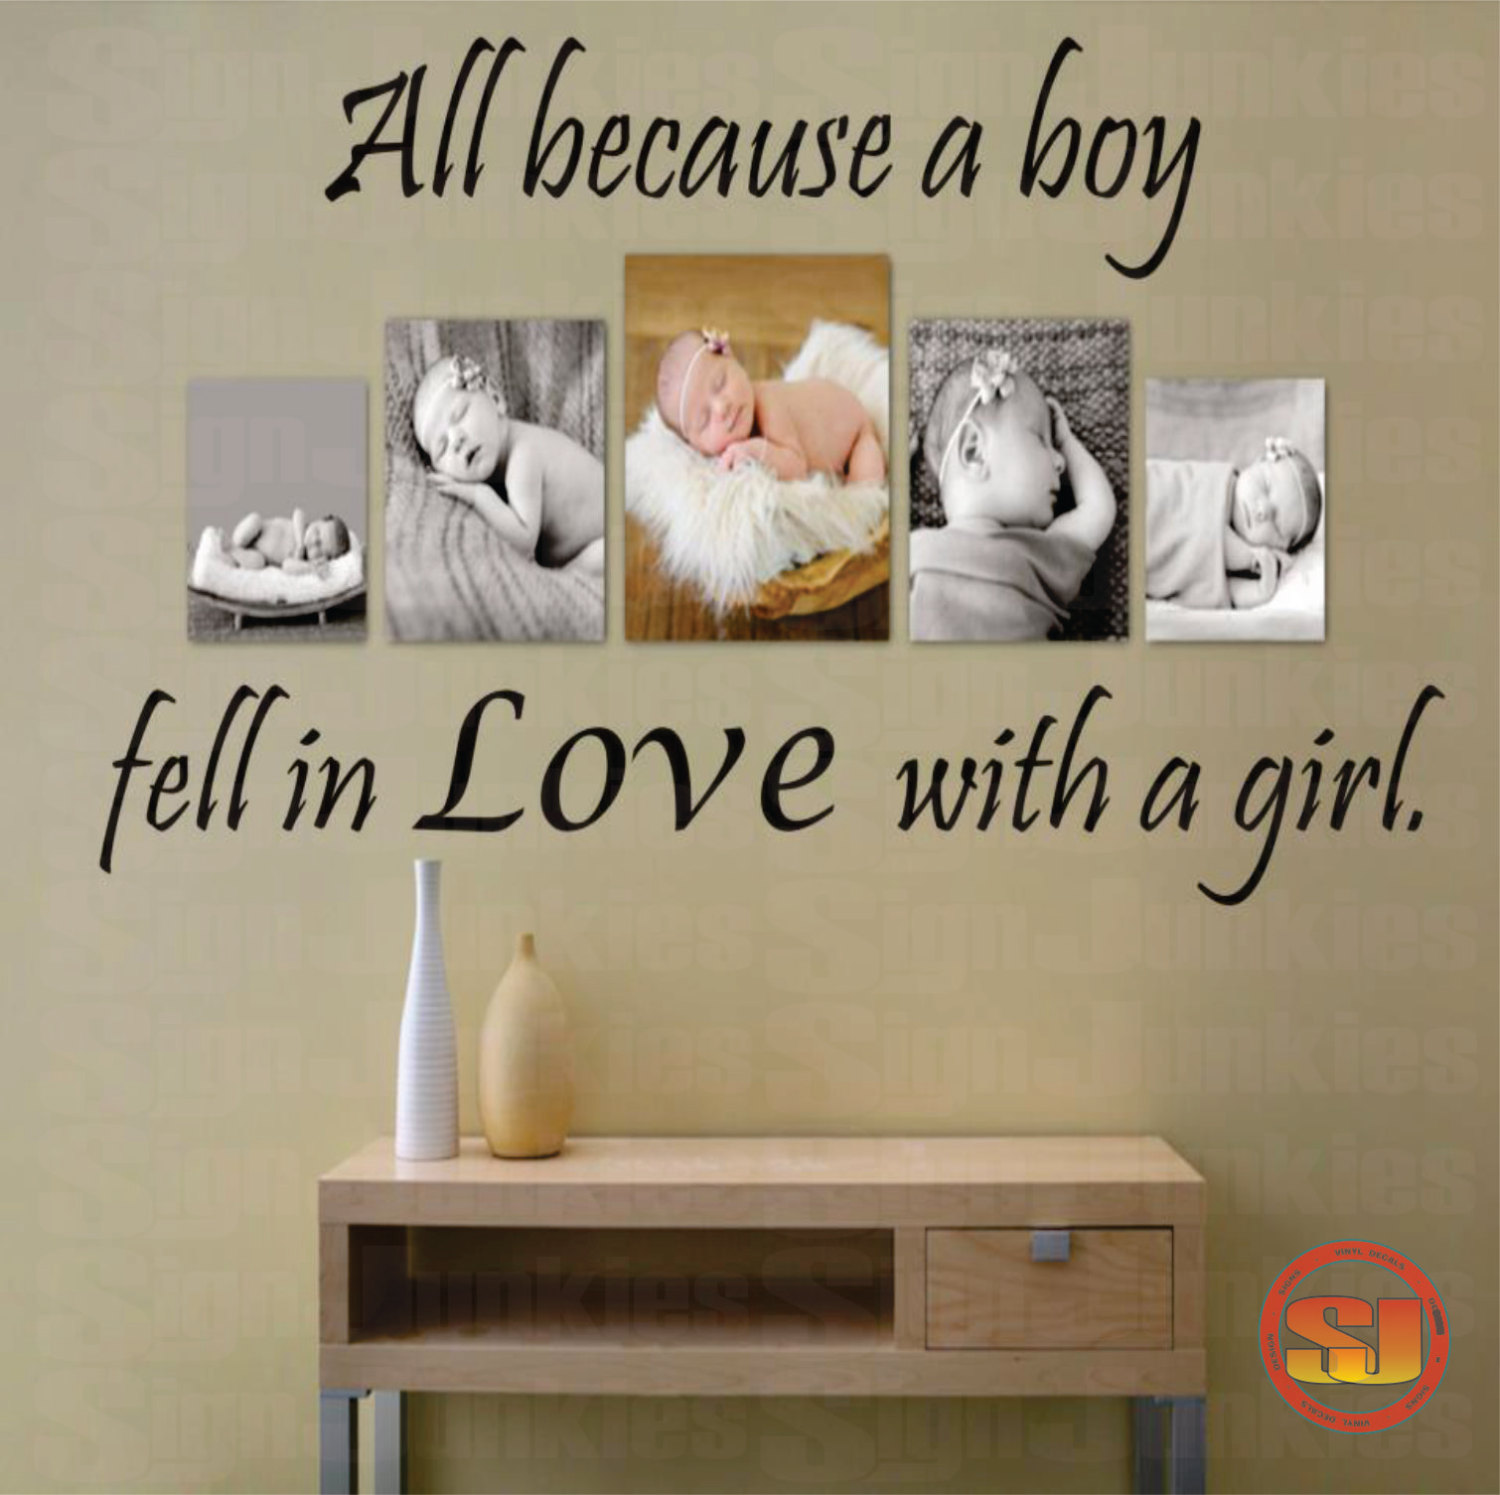 boy bedroom wall quotes quotesgram 10745 | 1252780970 love quote decal all because a boy fell in love with a girl bedroom livingroom photo wall nursery 22h x 36w 34 95 via etsy